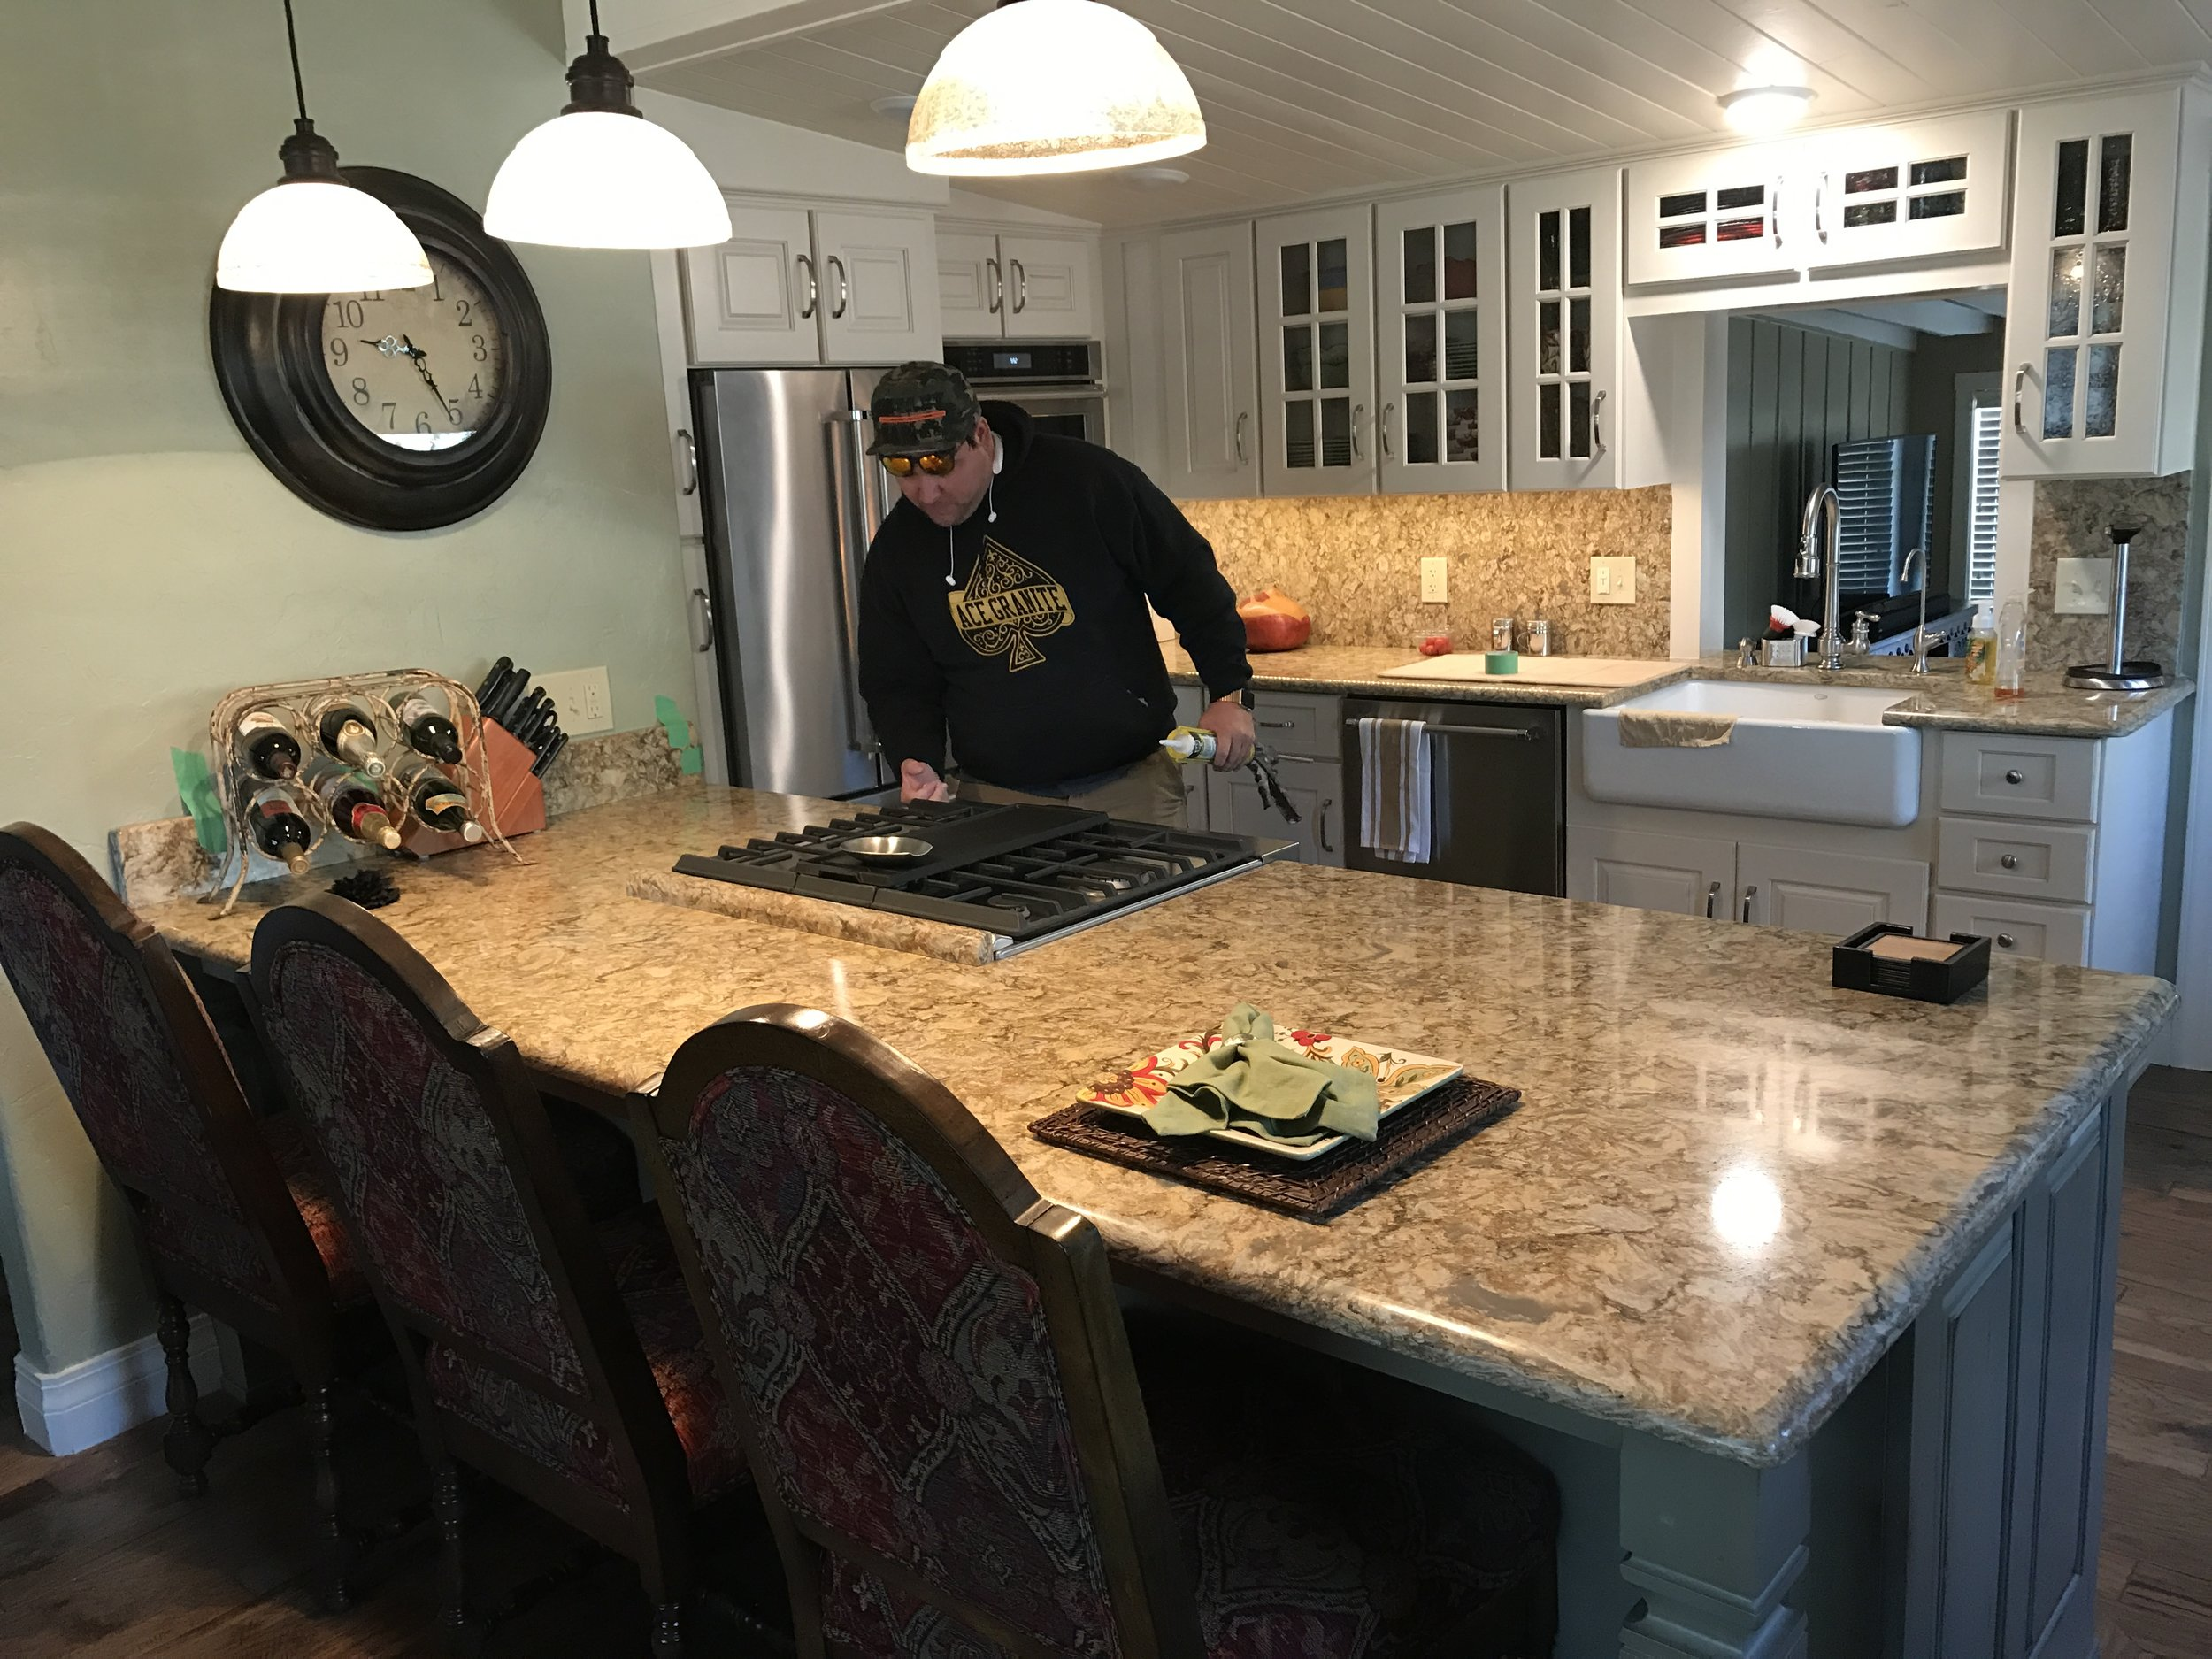 ideas countertops file affordable for of counter breathtaking unnamed with cabinets kitchen average cost c decoration gallery dark tan granite photos brown